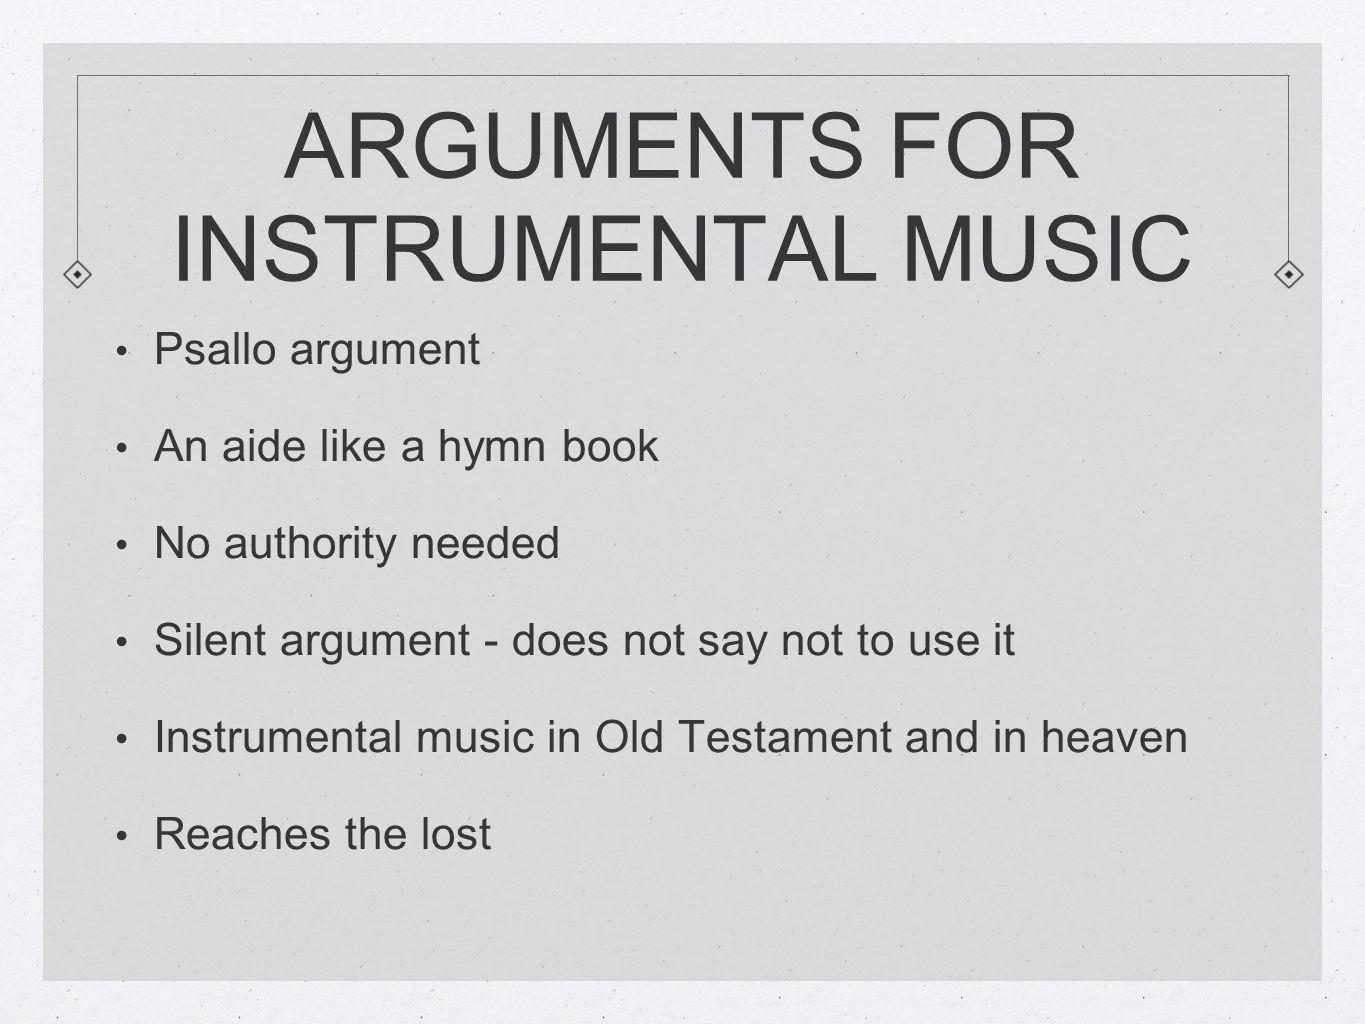 ARGUMENTS FOR INSTRUMENTAL MUSIC Psallo argument An aide like a hymn book No authority needed Silent argument - does not say not to use it Instrumental music in Old Testament and in heaven Reaches the lost